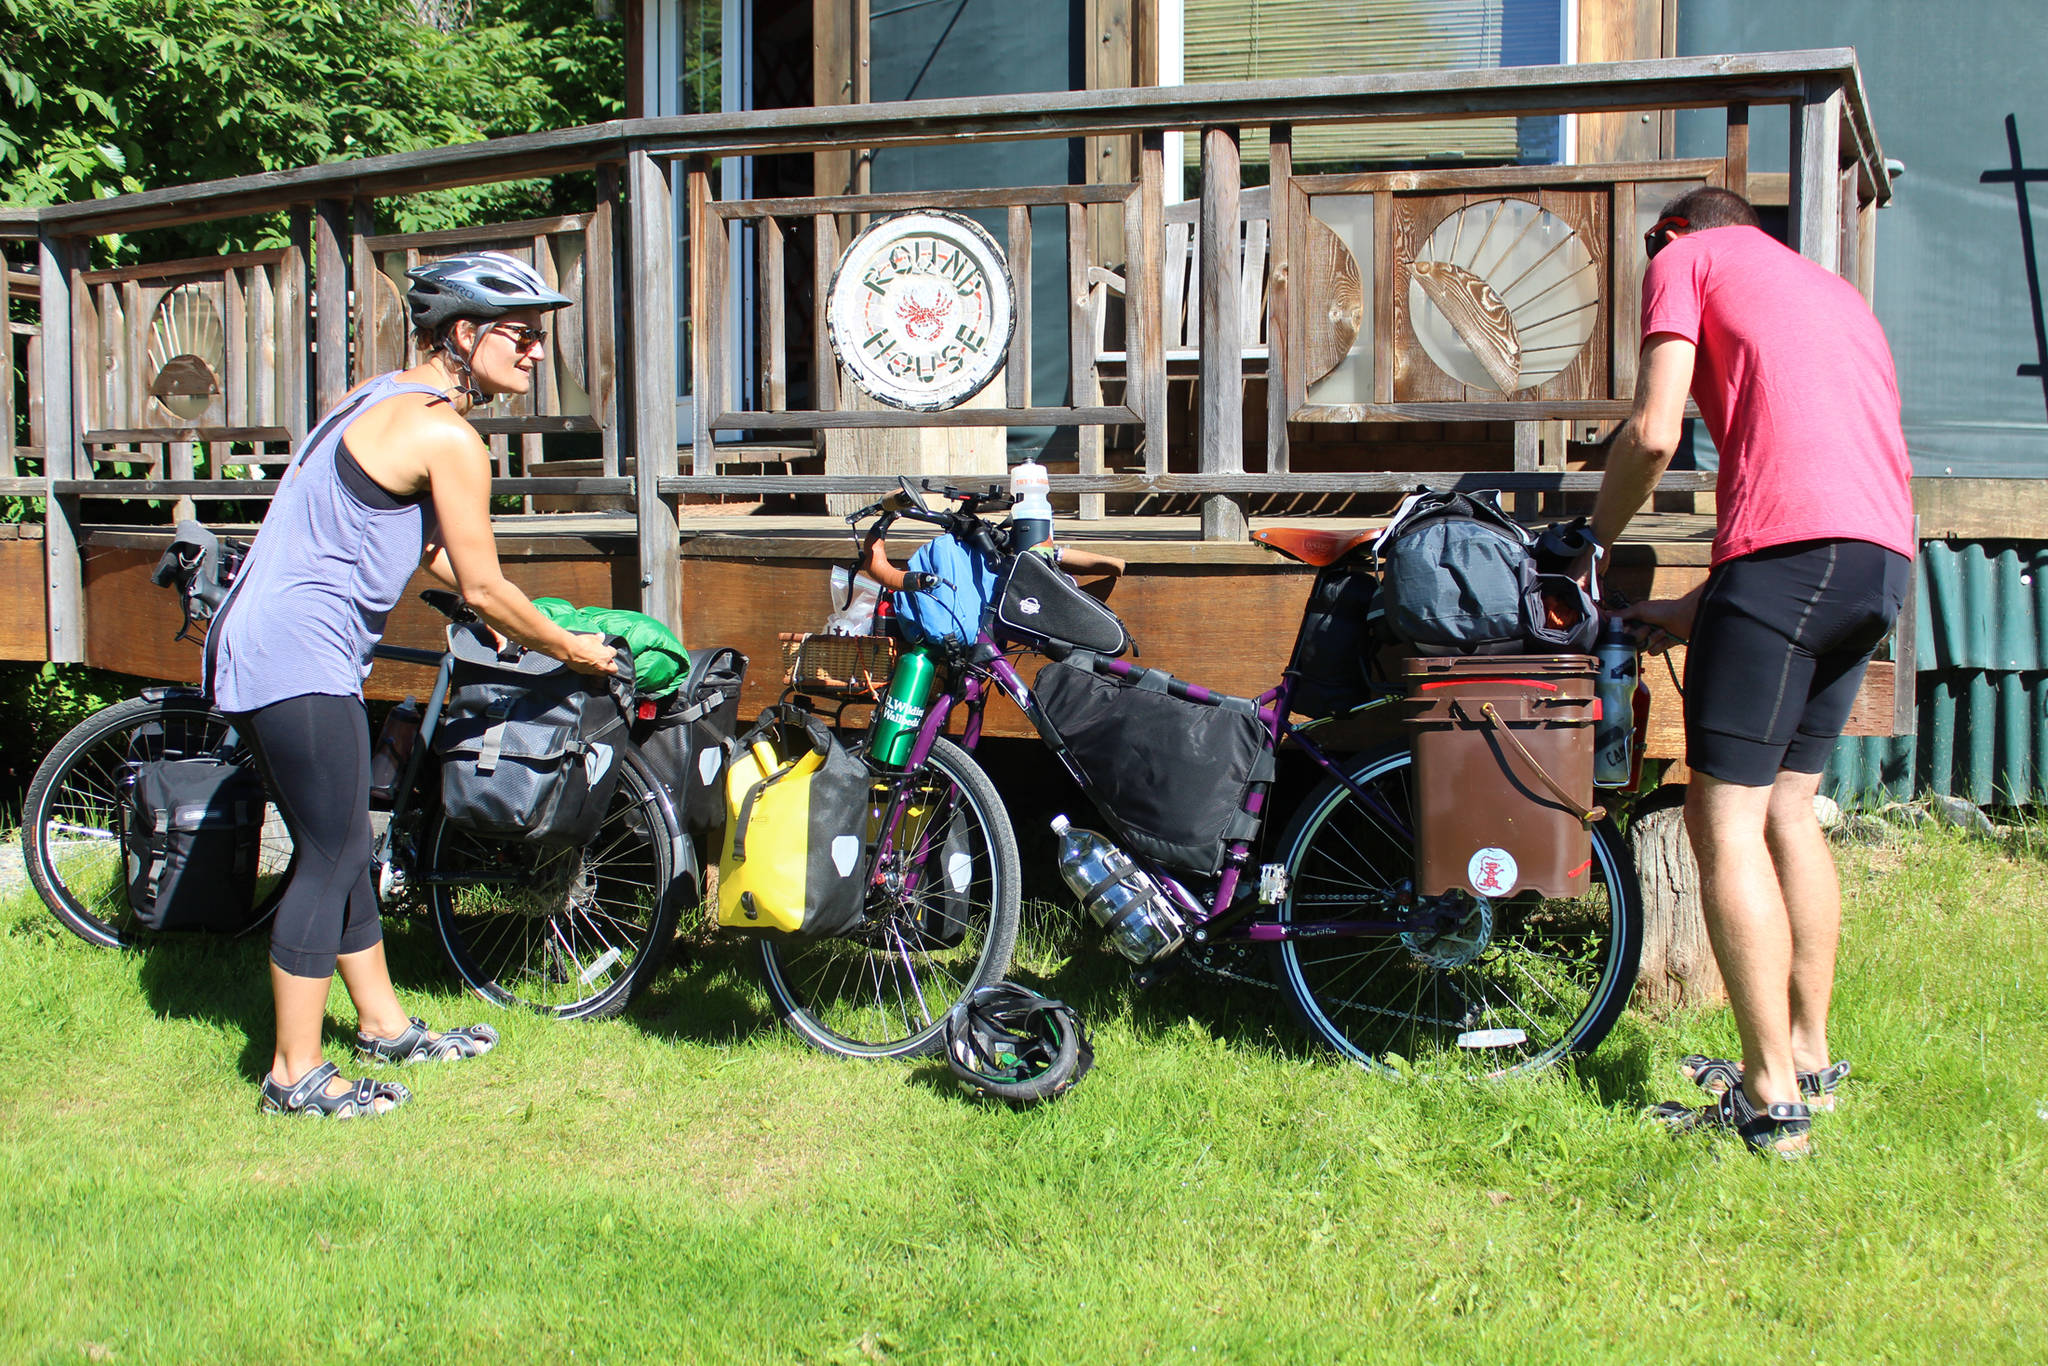 Sophie George and Chris Haag put the finishing touches on their bikes before setting off on a two-year trek from Alaska to Argentina on Monday, July 2, 2018 on Hidden Way in Homer, Alaska. The husband and wife packed up their life in Utah prior to the adventure. (Photo by Megan Pacer/Homer News)